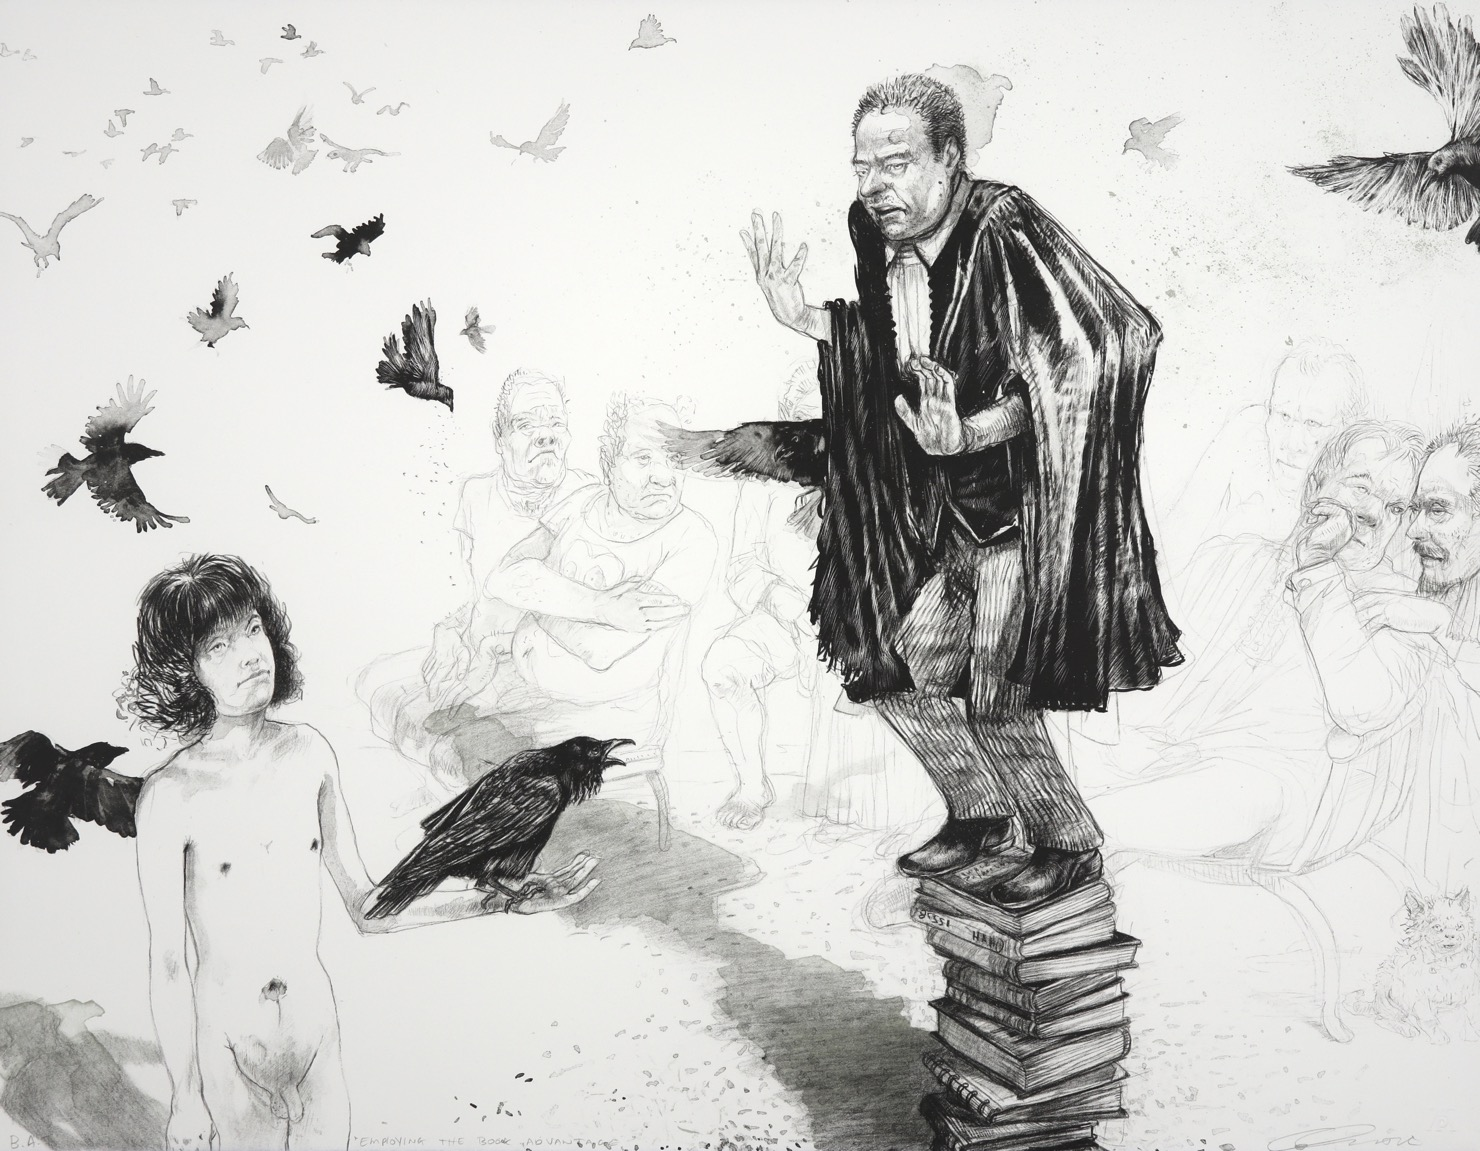 Lawyer standing on a pile of books addressing a naked teenage boy holding a crow